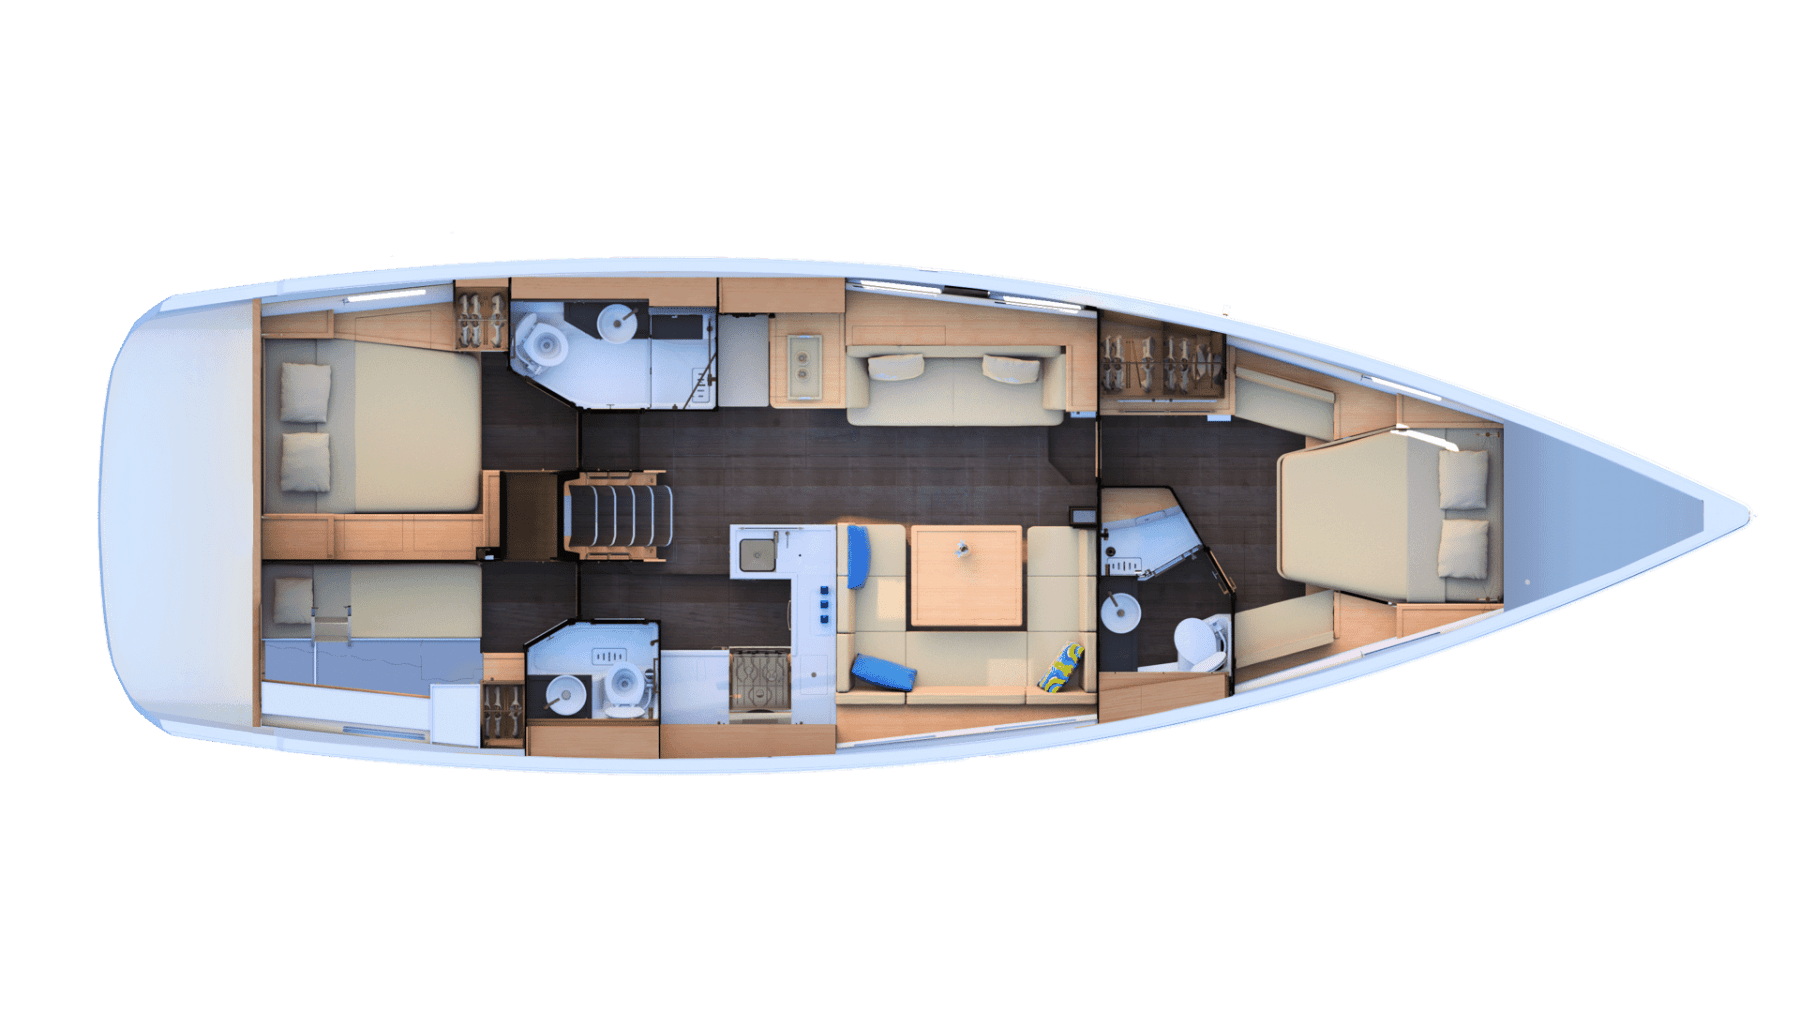 Jeanneau-51-layout-4-charter-ownership-yacht